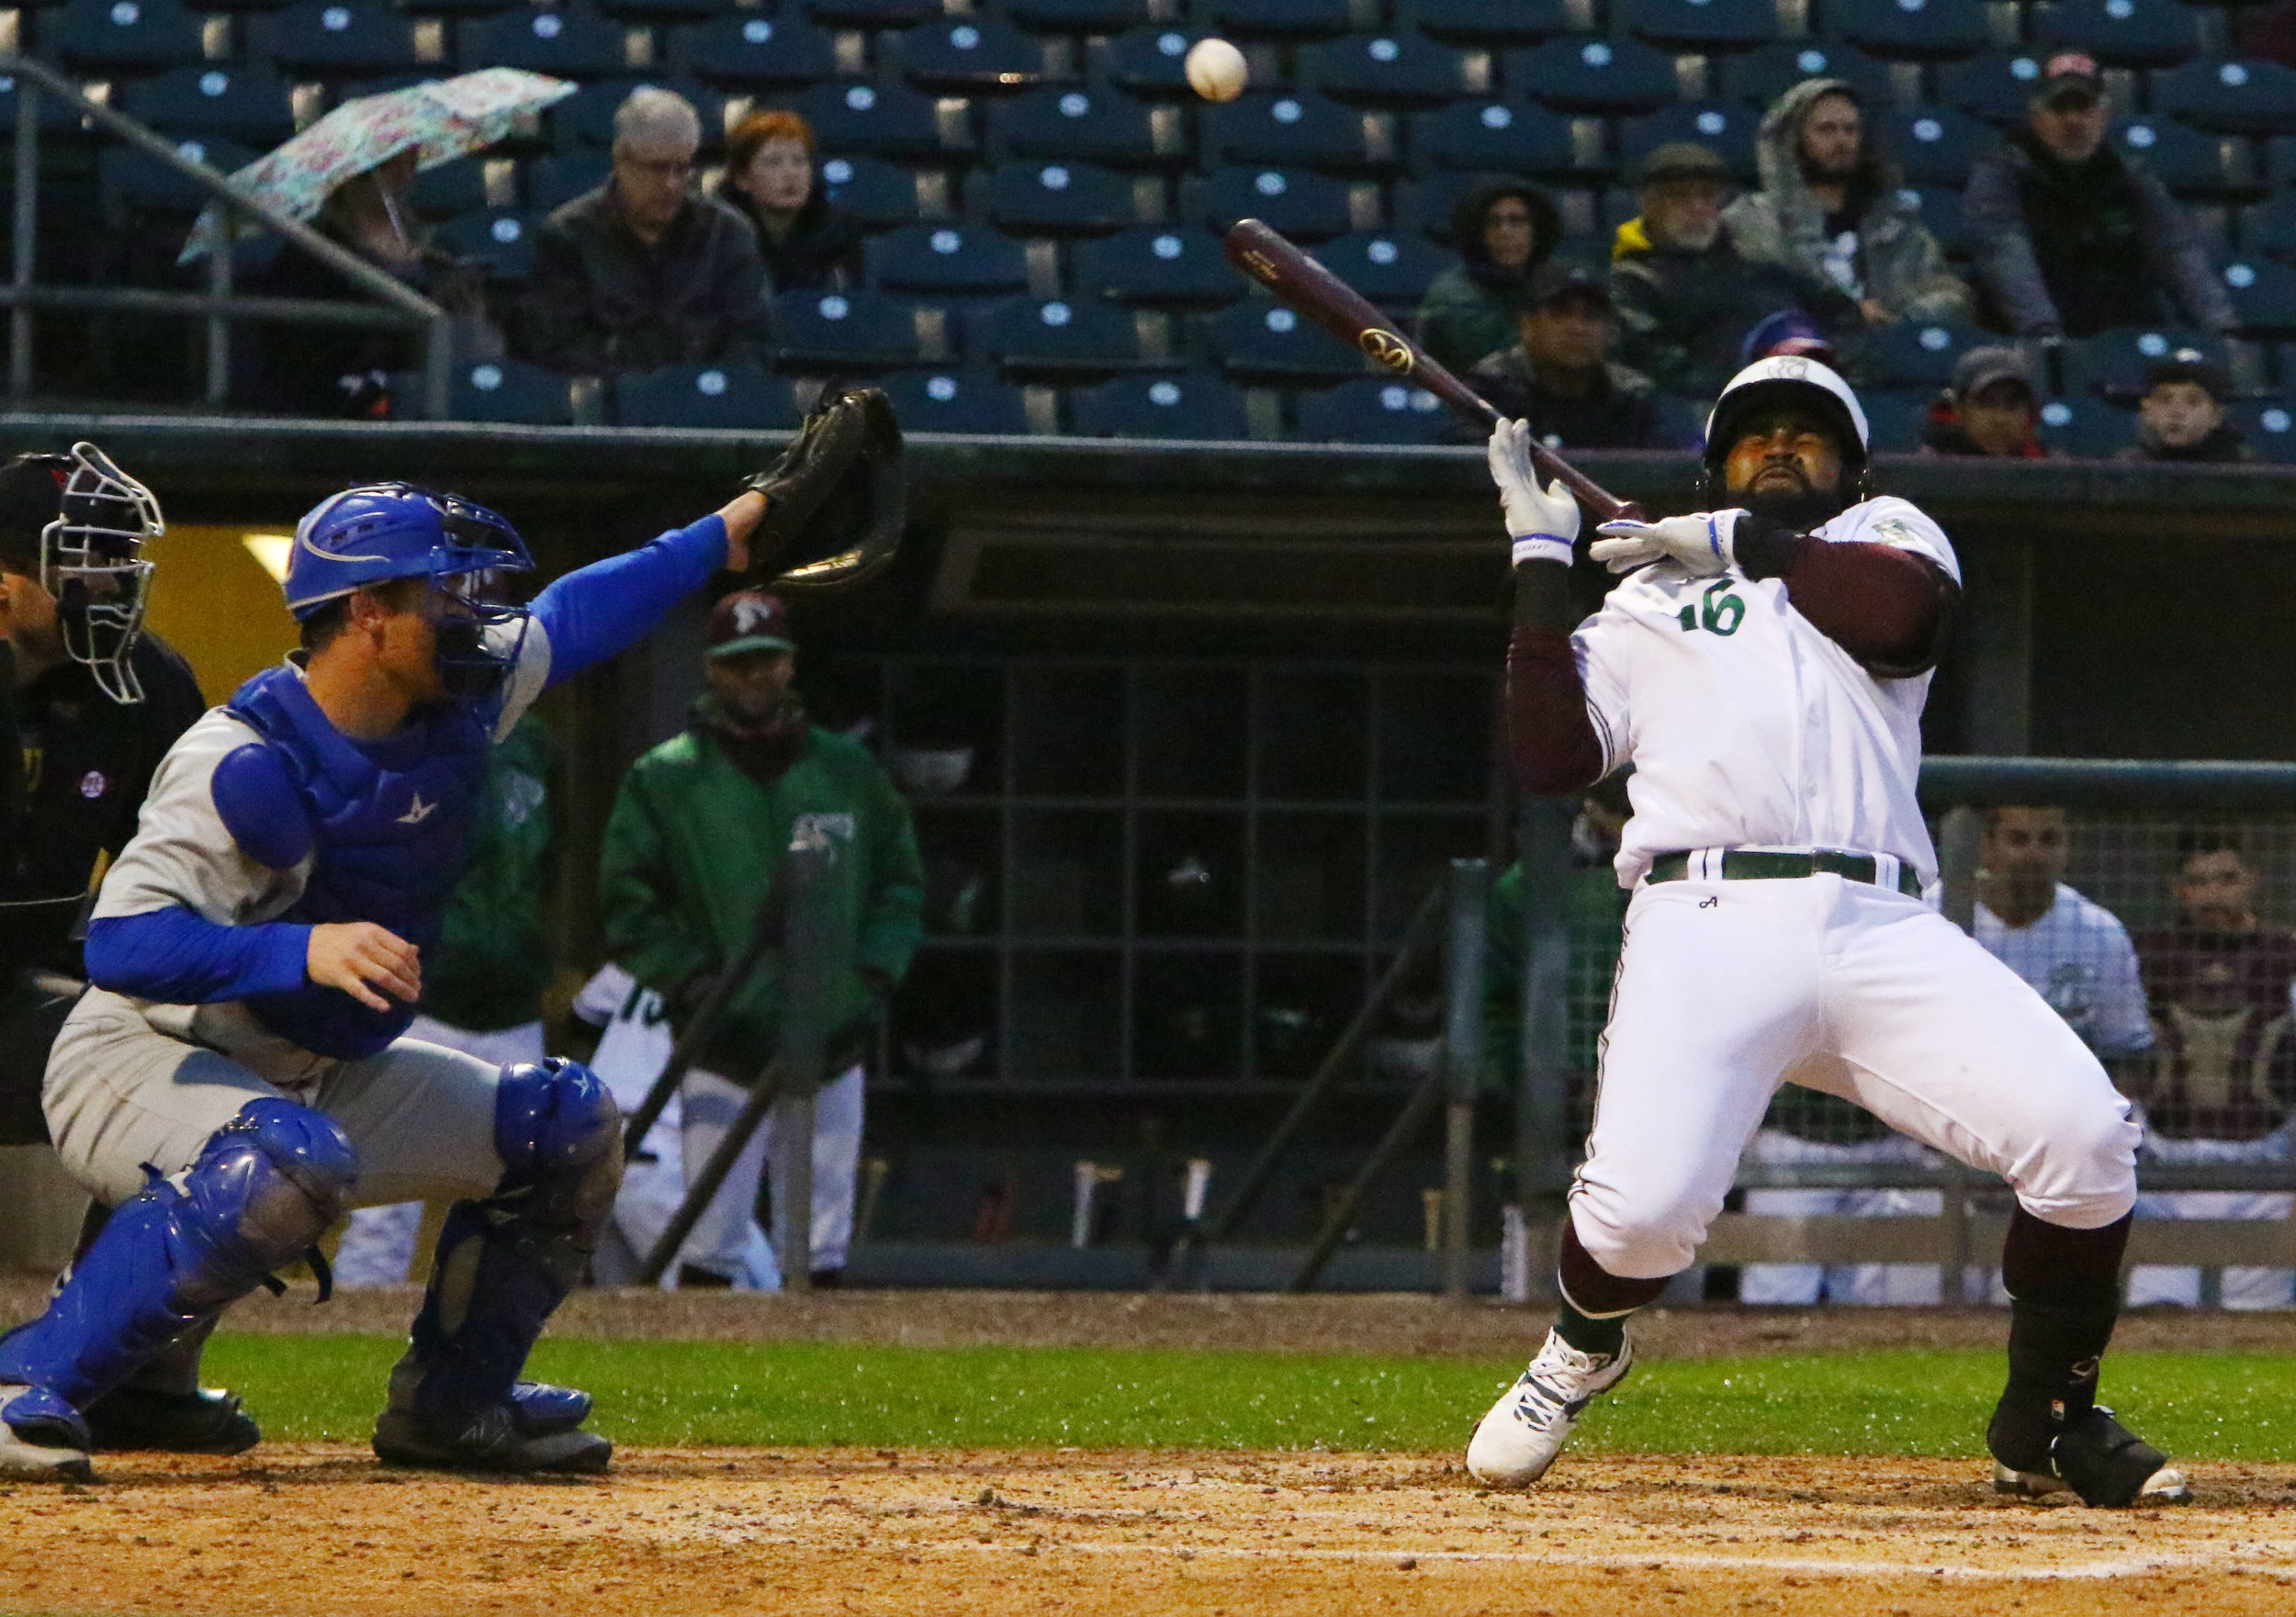 The Gary RailCats' Wilfredo Gimenez is hit by a pitch at U.S. Steel Yard in Gary.